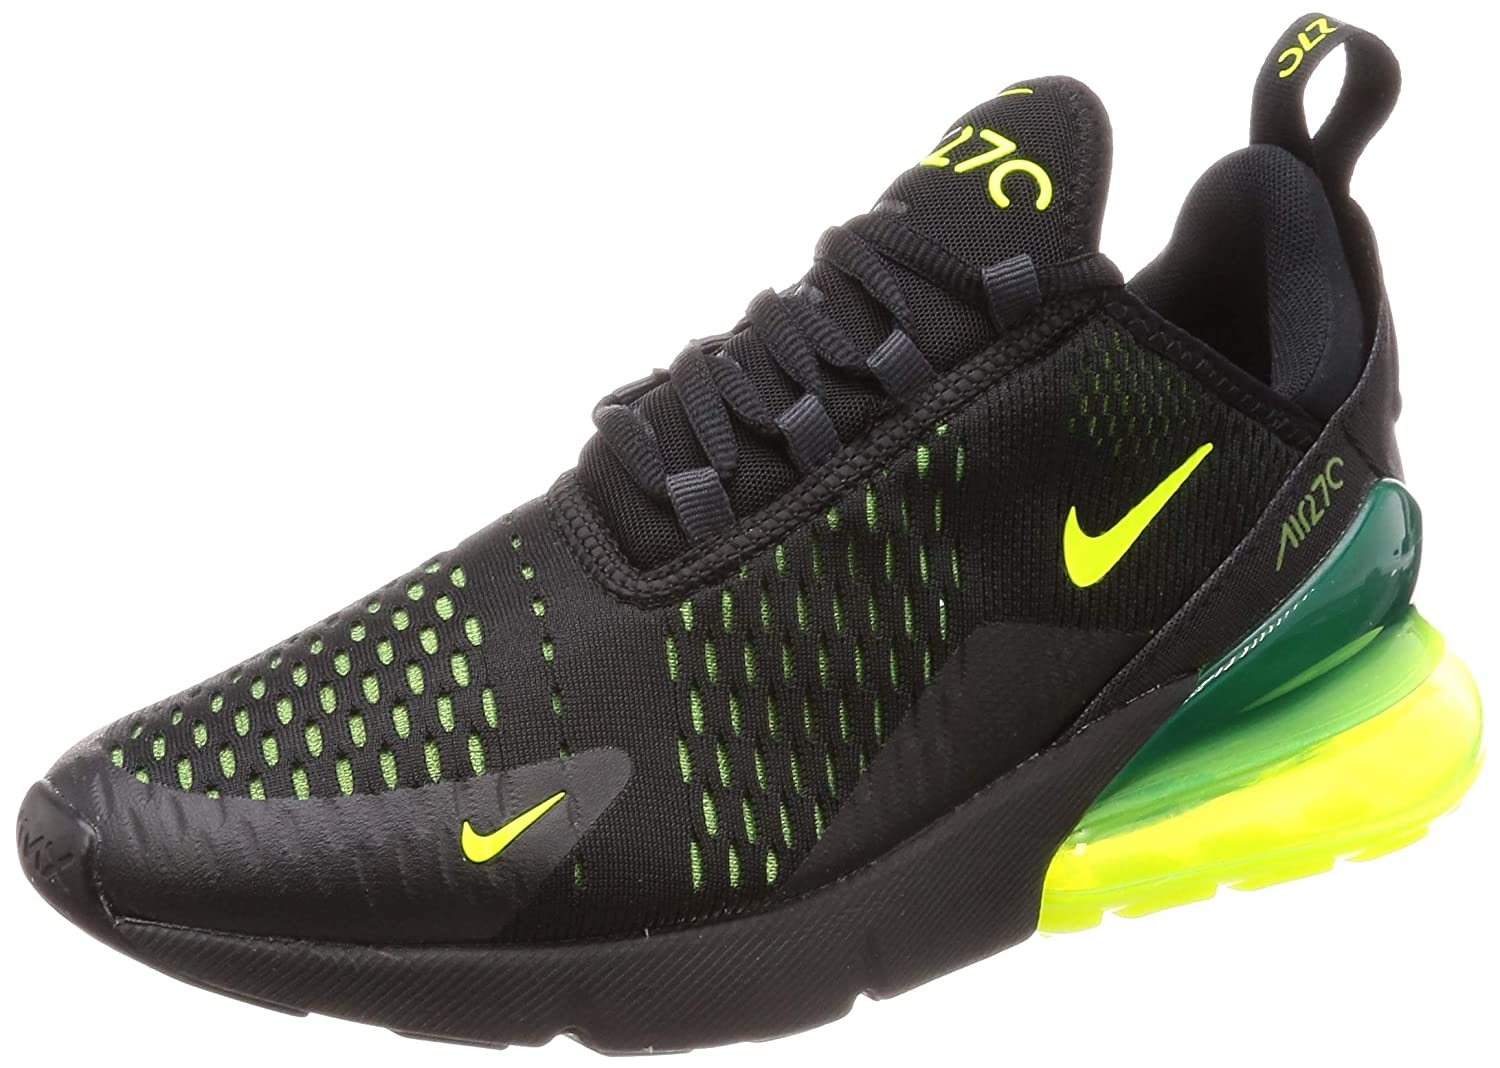 online store 621d6 73db1 Nike Men's Air Max 270 Training Shoes: Amazon.co.uk: Shoes ...